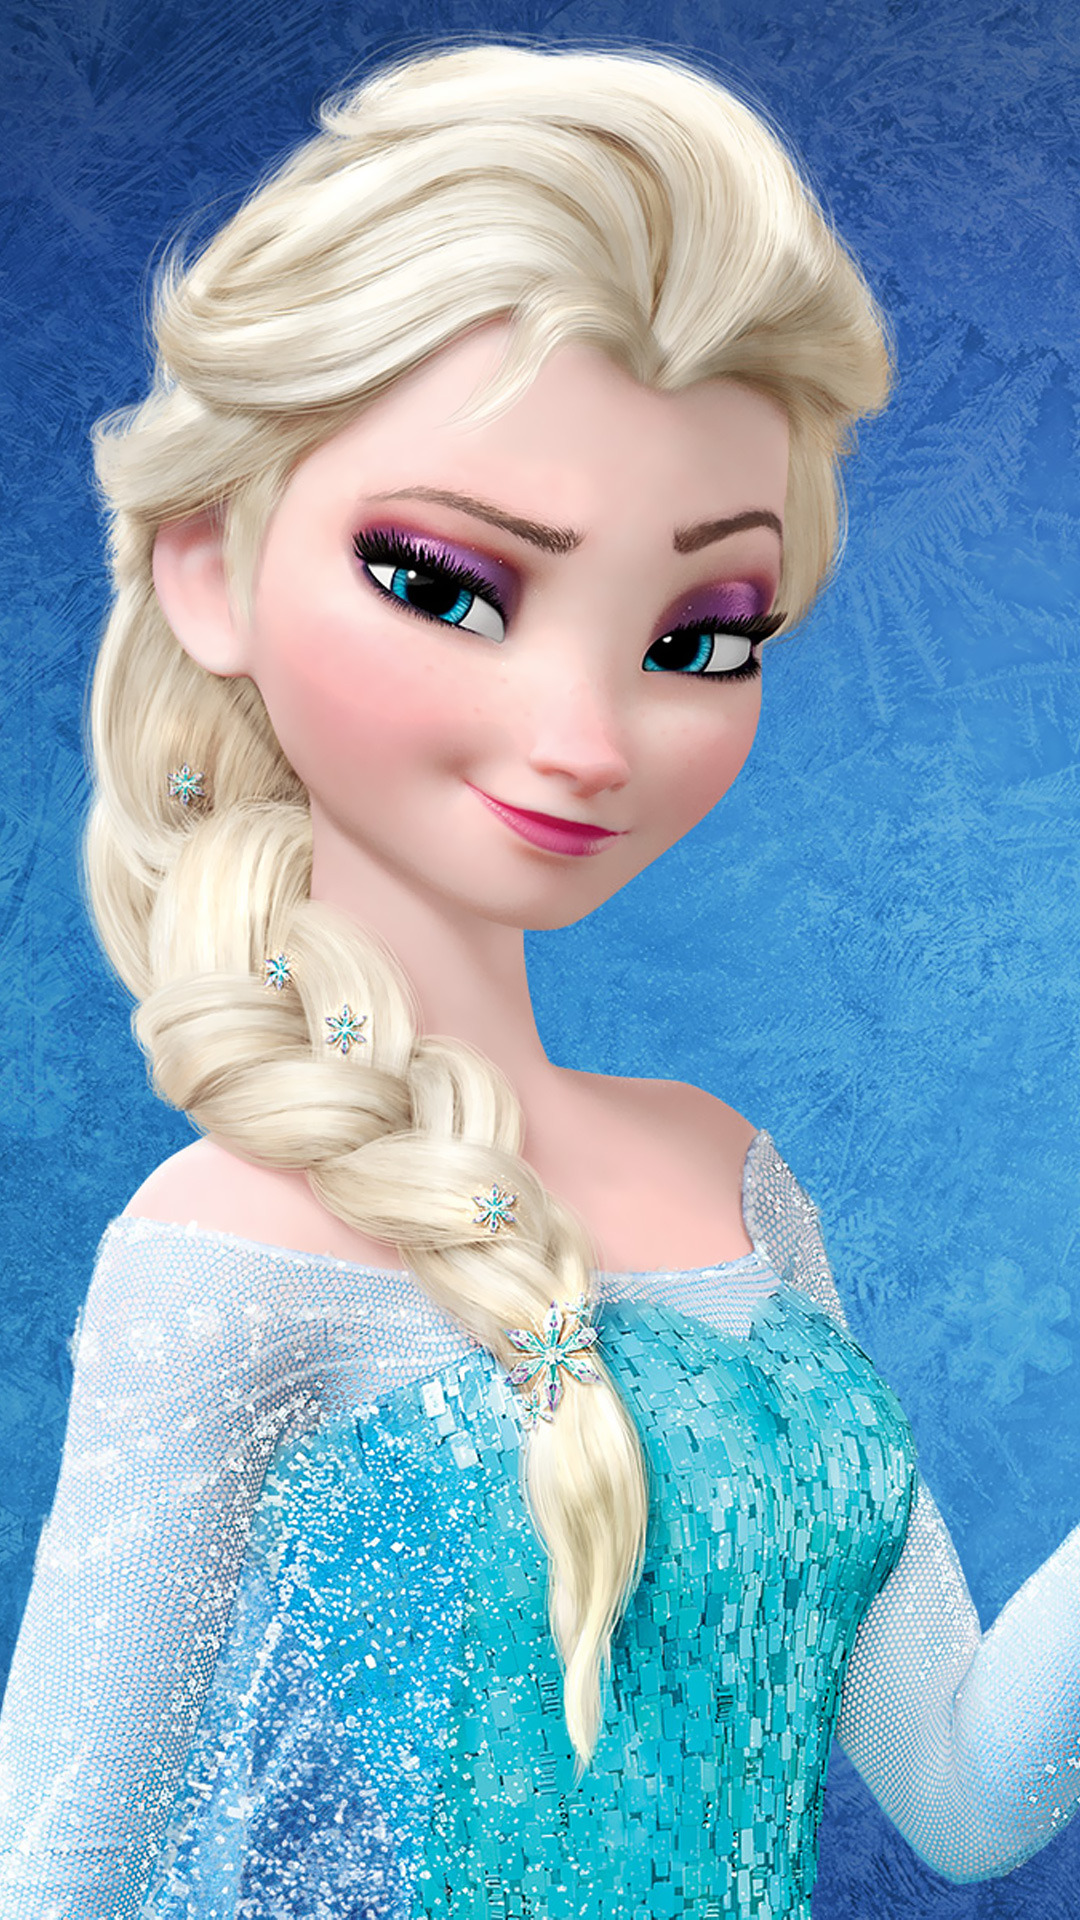 Plik elsa frozen cartoon mobile wallpaper 1080x1920 3466 - Frozen cartoon wallpaper ...